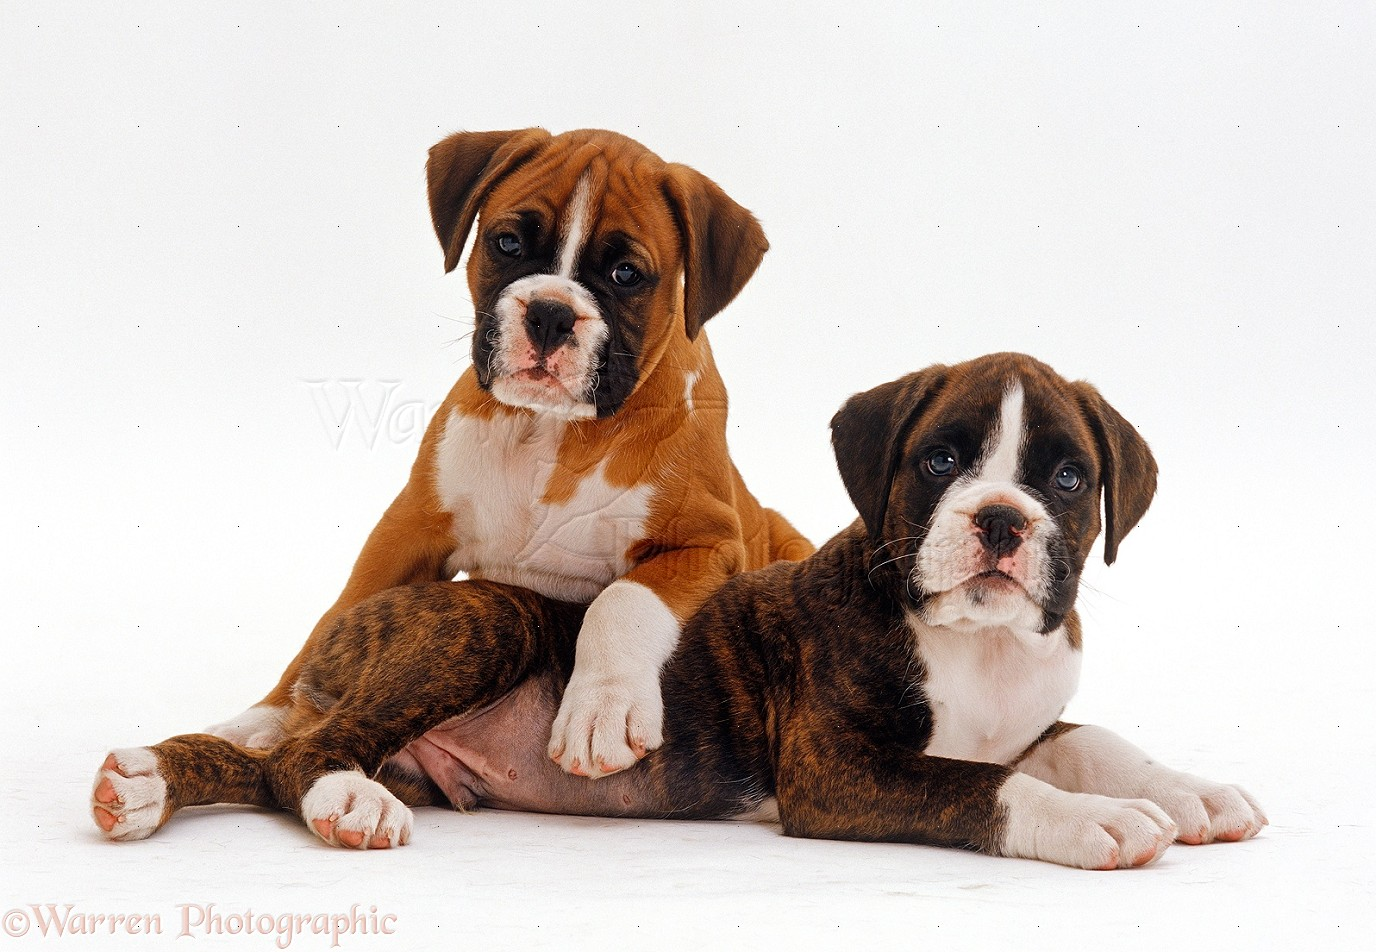 WP24228 Red Boxer puppy 8 weeks old with his brindle half brother 7 1376x952